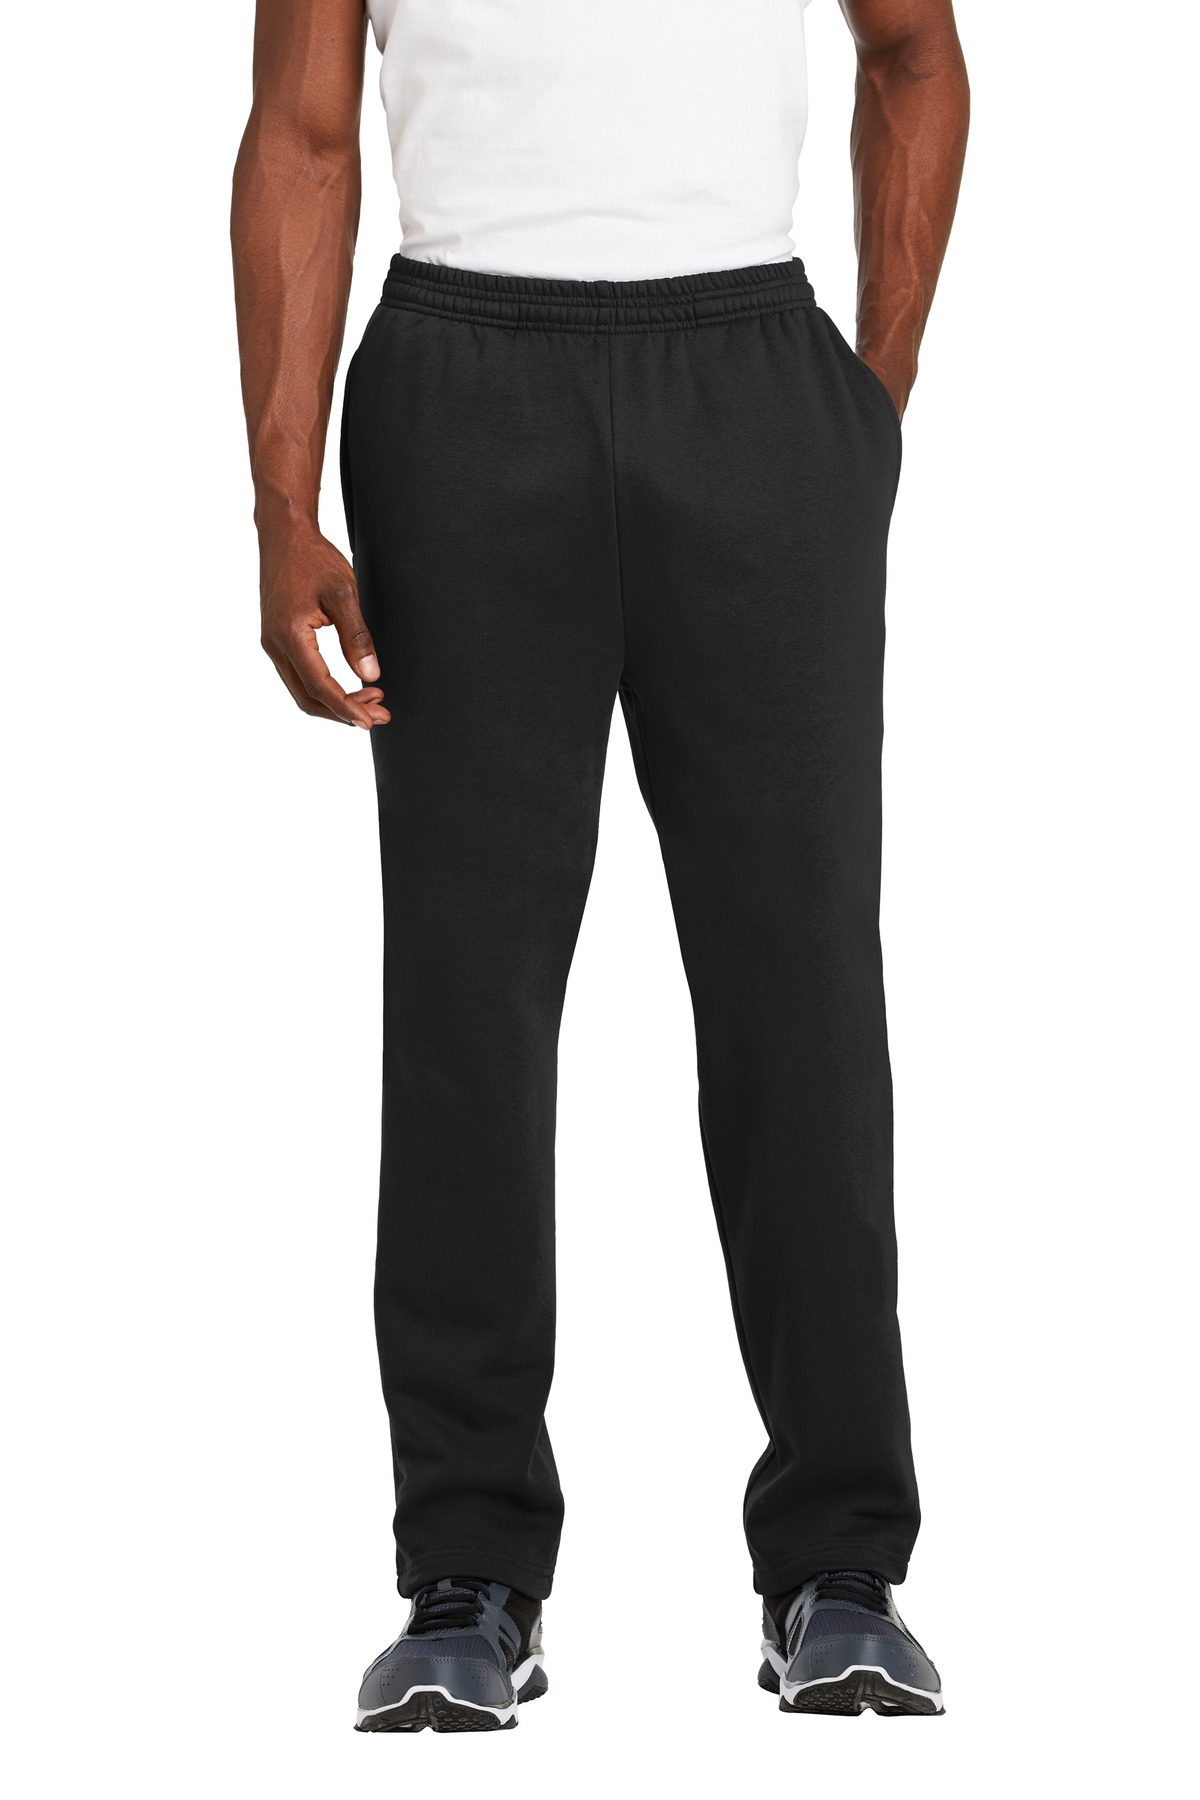 Sport-Tek ®  Open Bottom Sweatpant. ST257 - Black